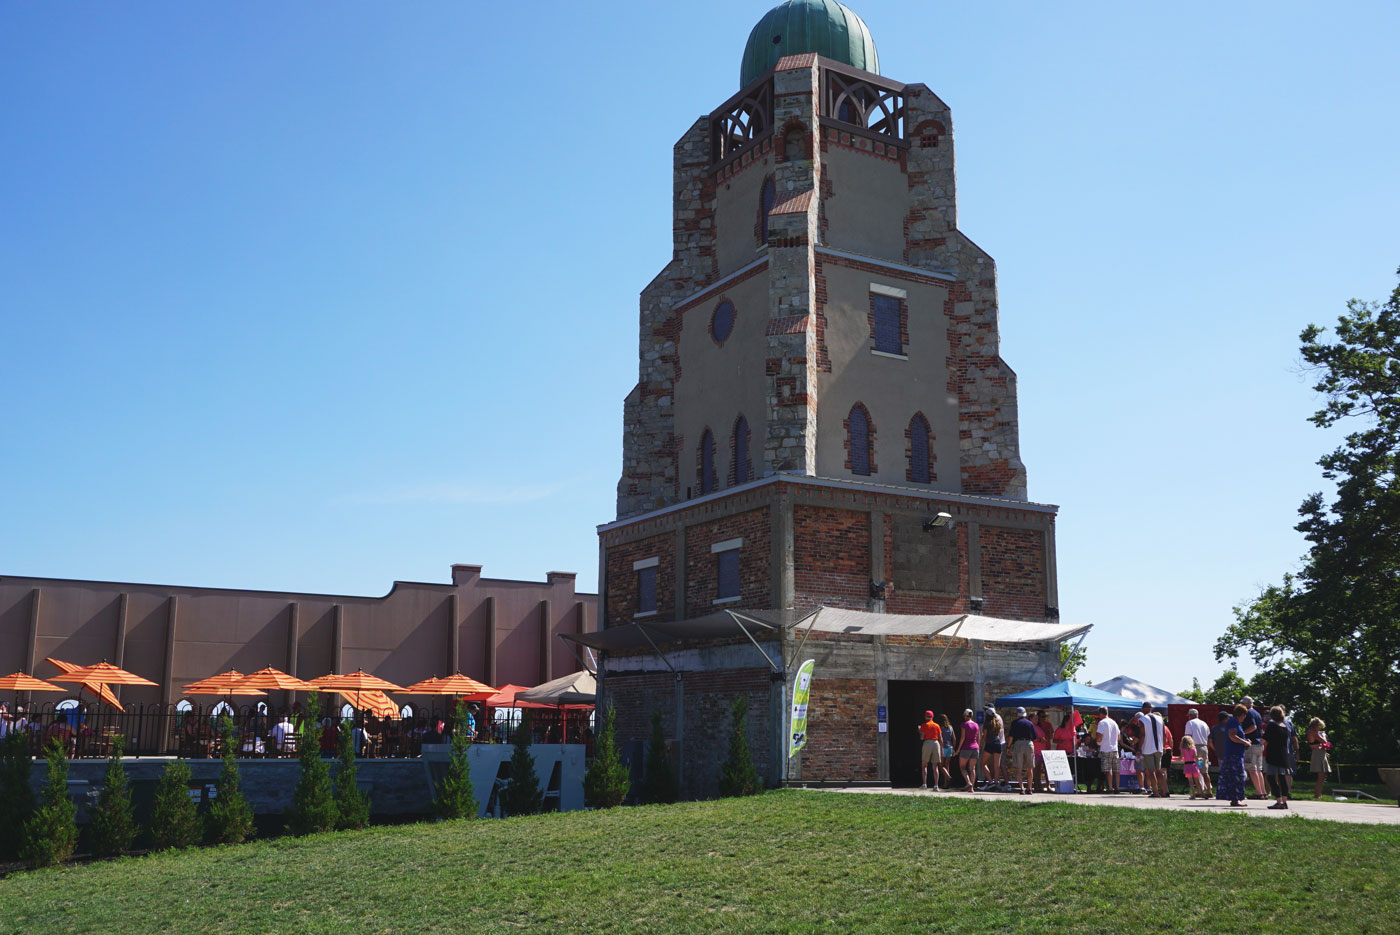 The Lonz Winery tower at Middle Bass State Park.